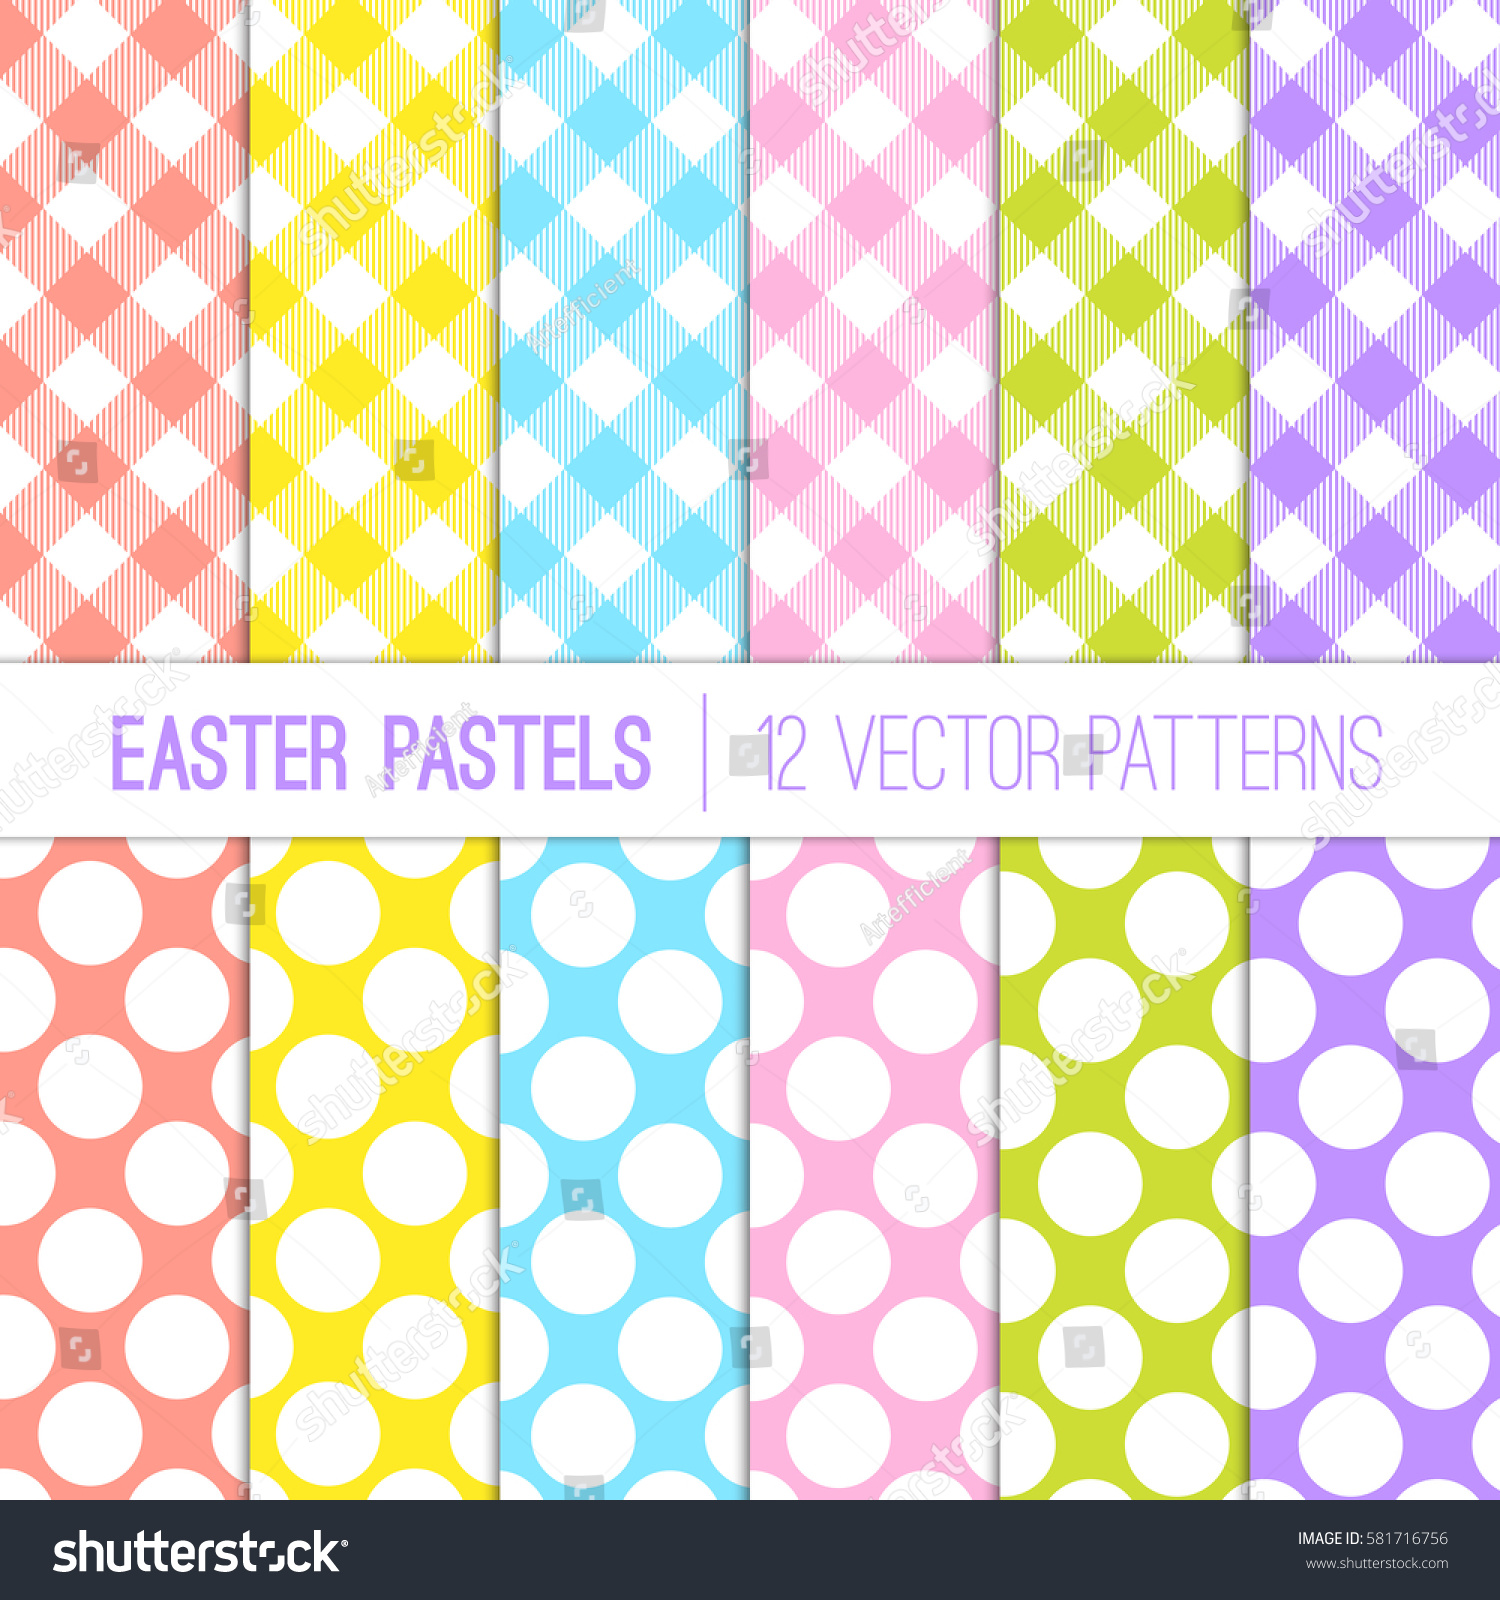 Easter colors gingham plaid jumbo dots stock vector - What are the easter colors ...